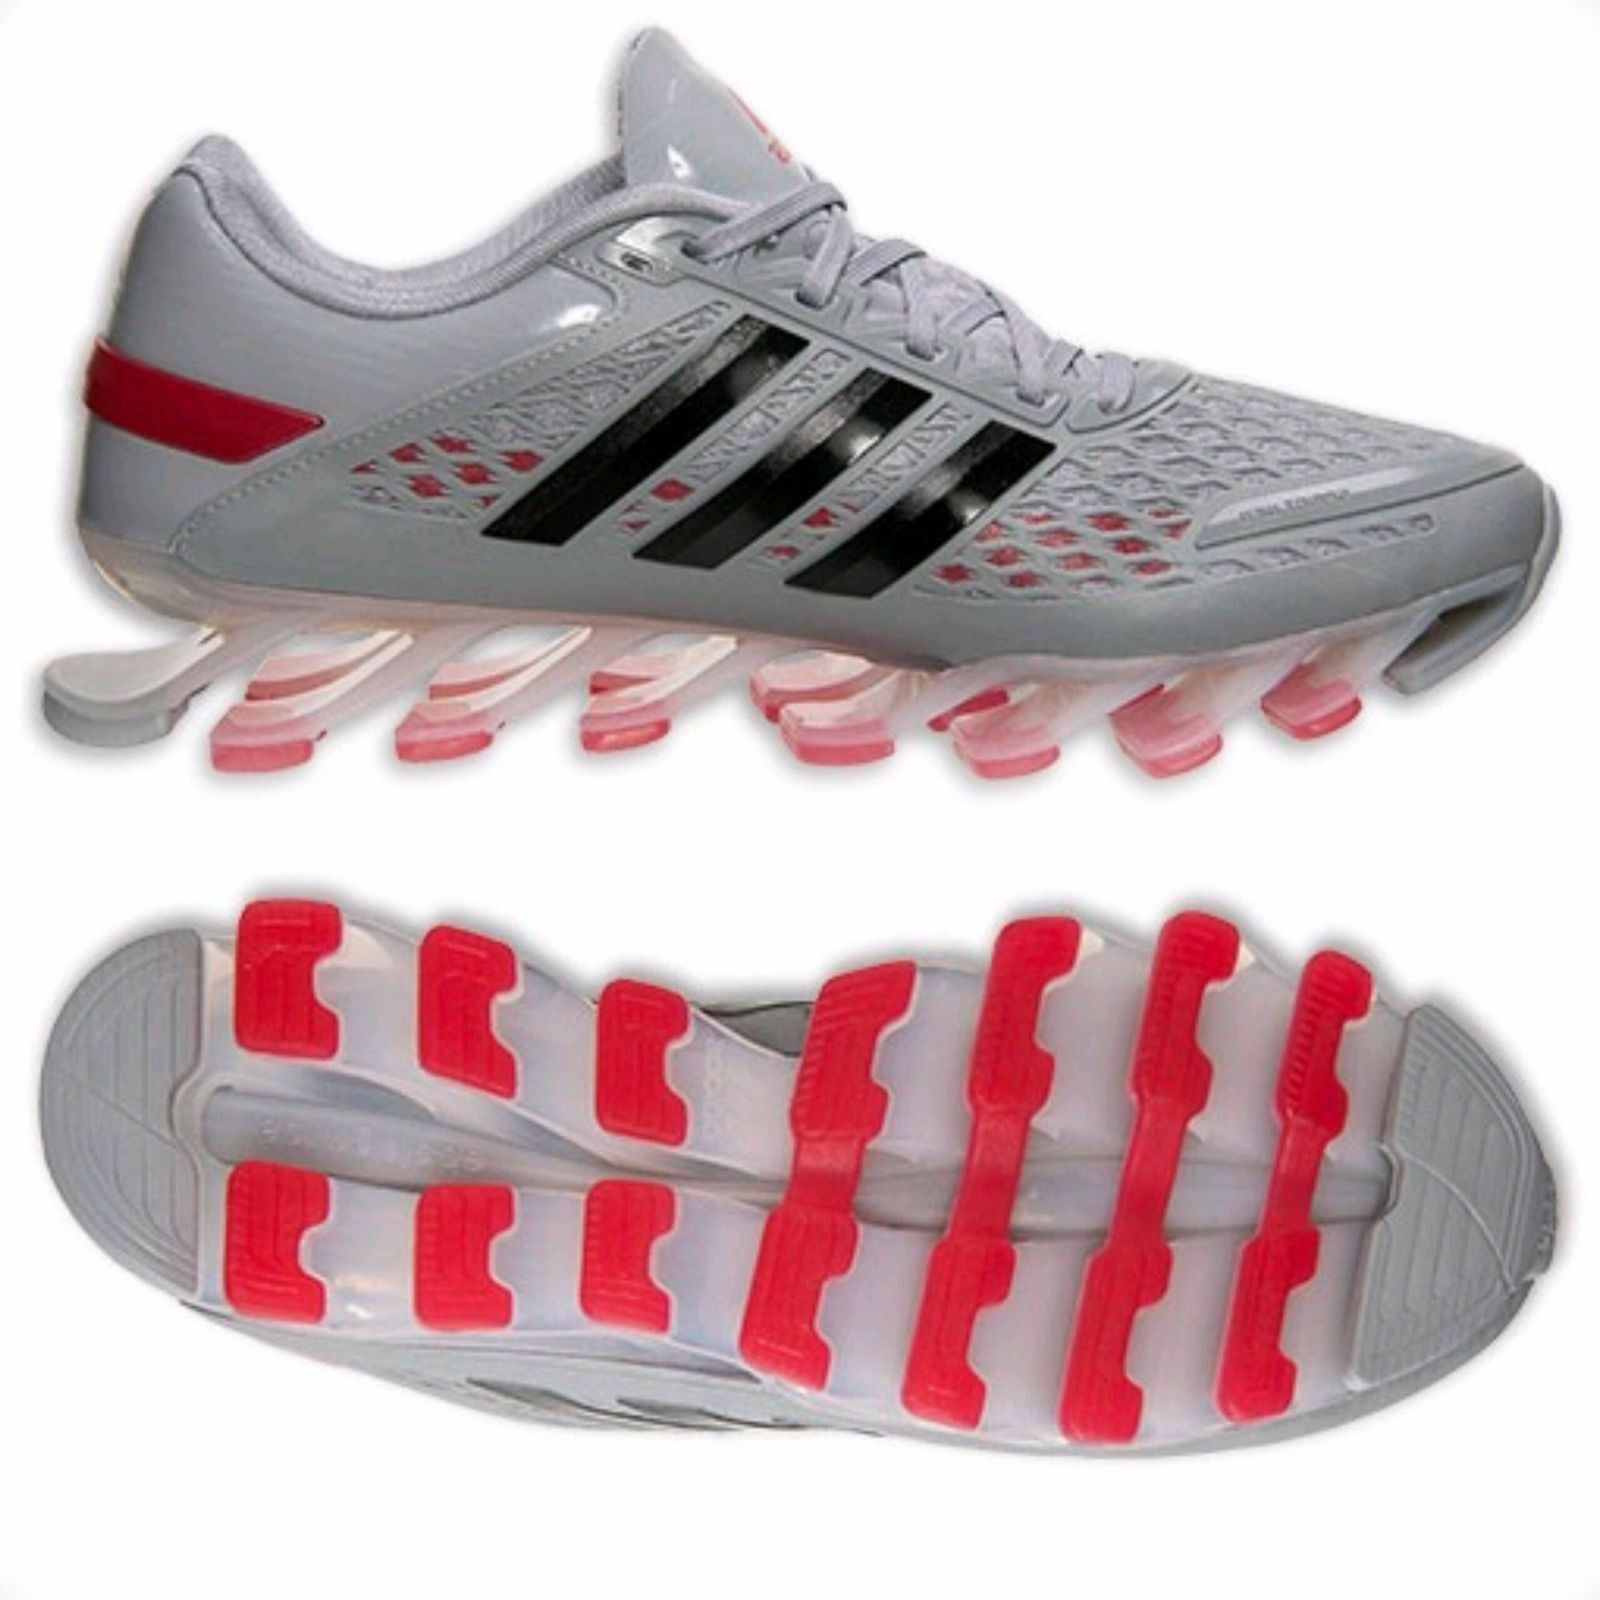 Adidas SPRINGBLADE RAZOR Running Shoe Ignite gym drive megabounce Trainer~Men 11